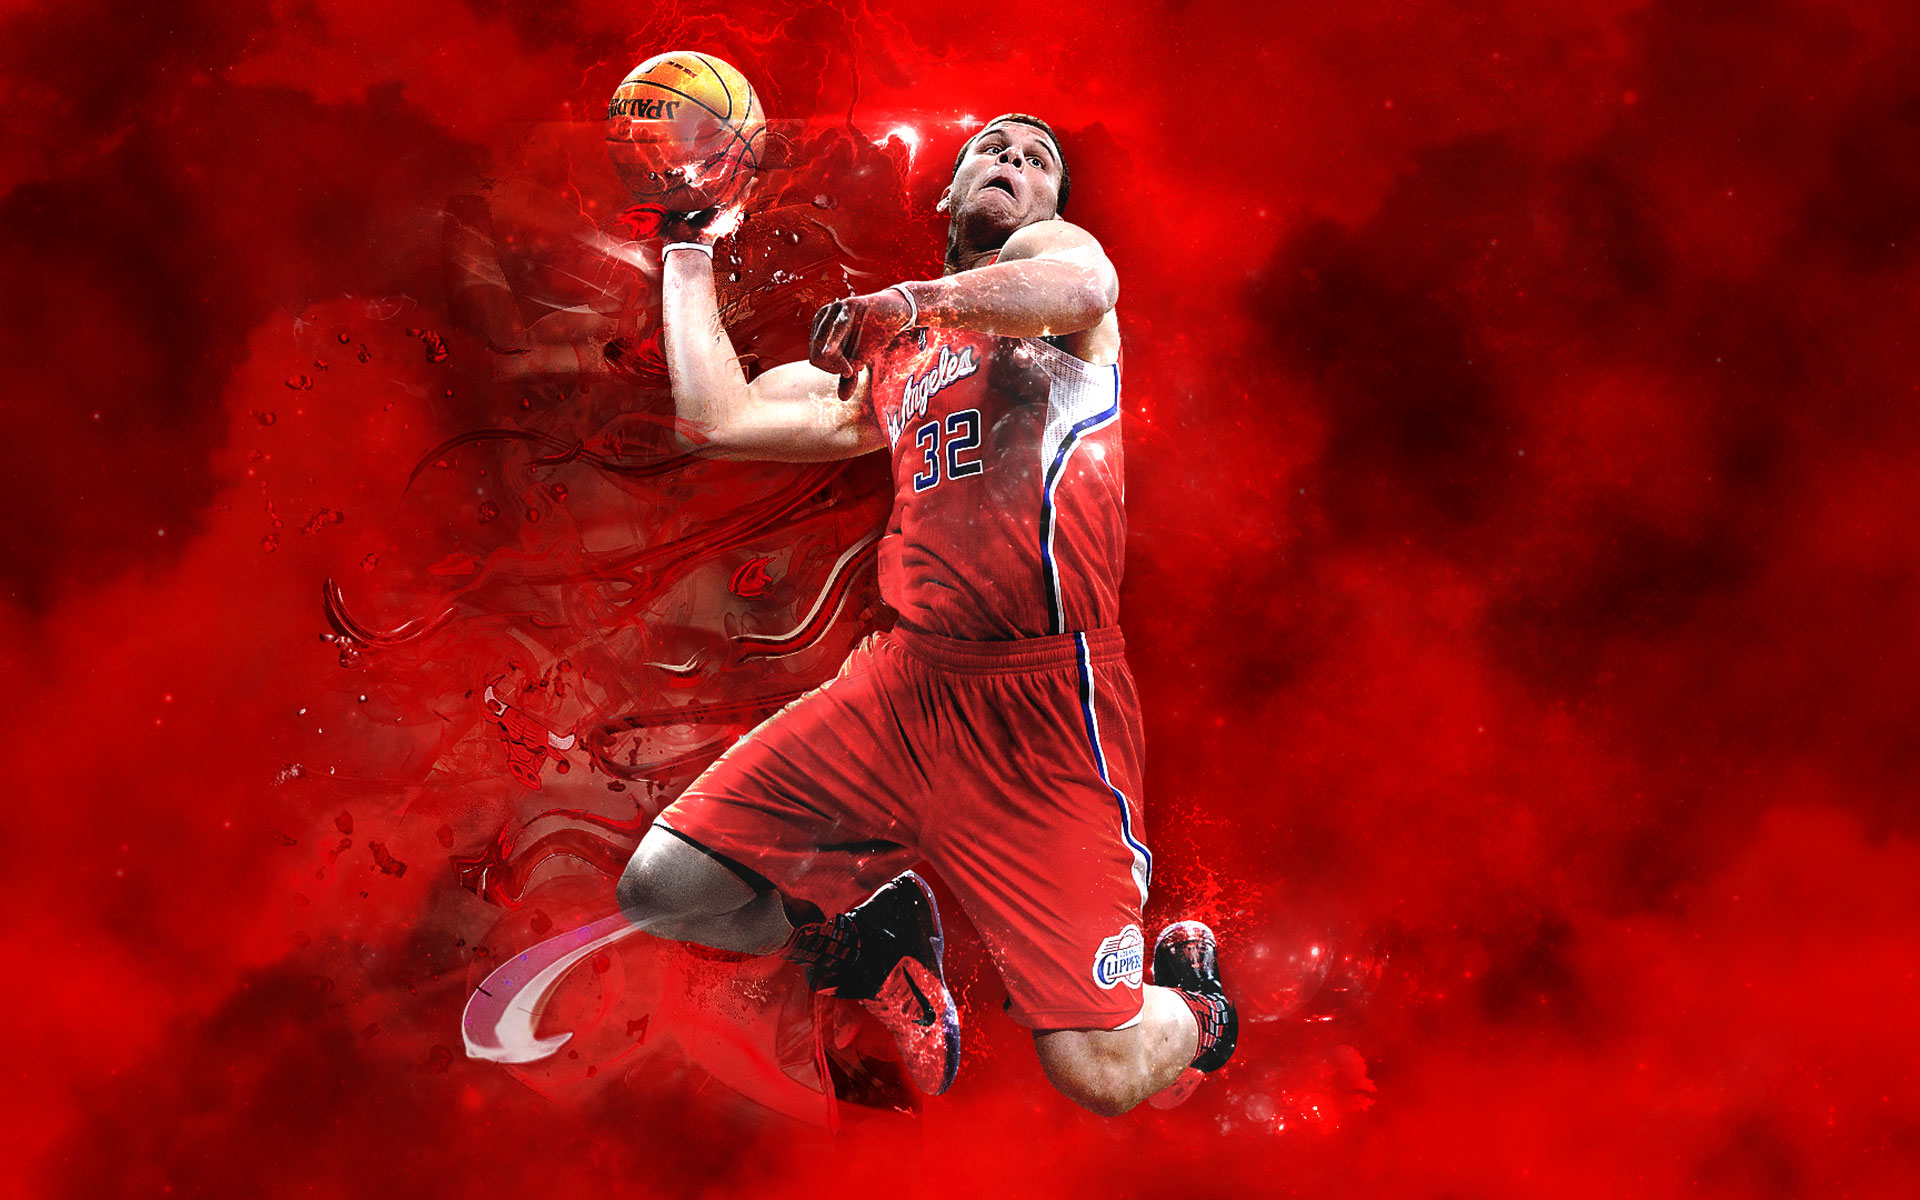 Blake Griffin Full Hd - Nba Live 17 Cover Athlete , HD Wallpaper & Backgrounds